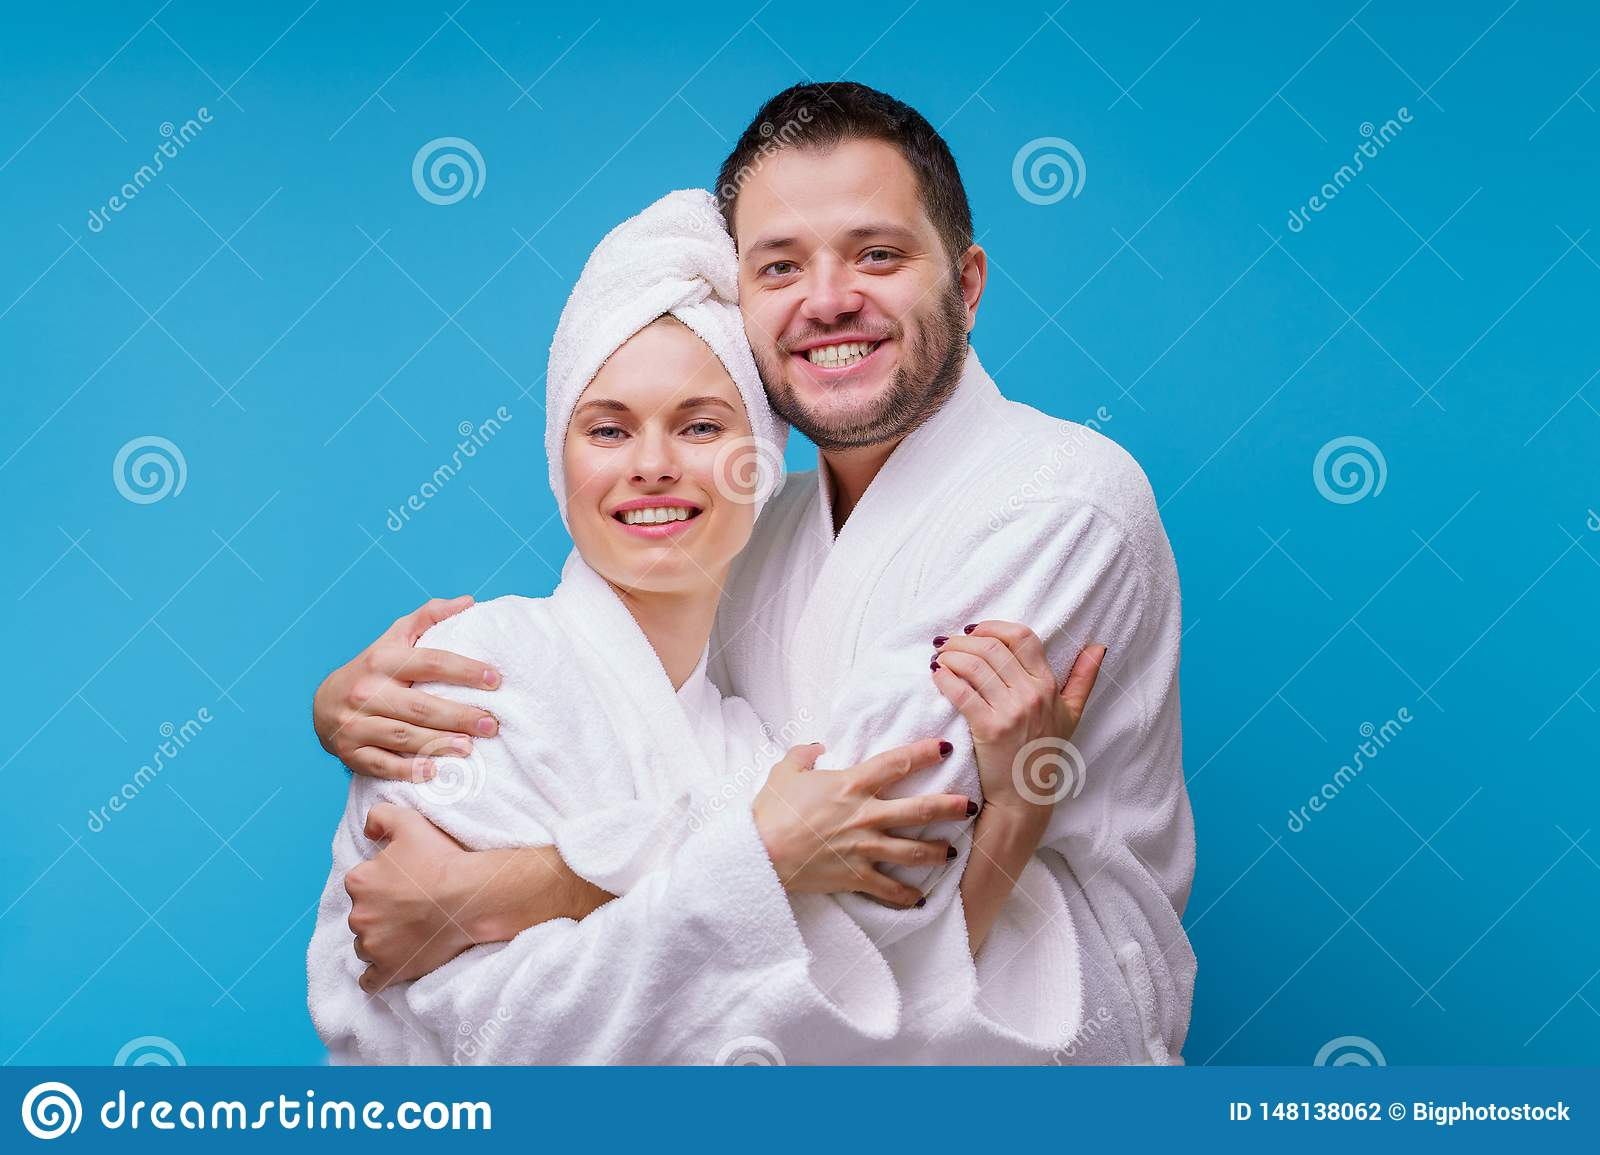 Photo Of Woman And Man In Bathrobe Hugging Themselves Stock Photo Image Of Cotton Happy 148138062